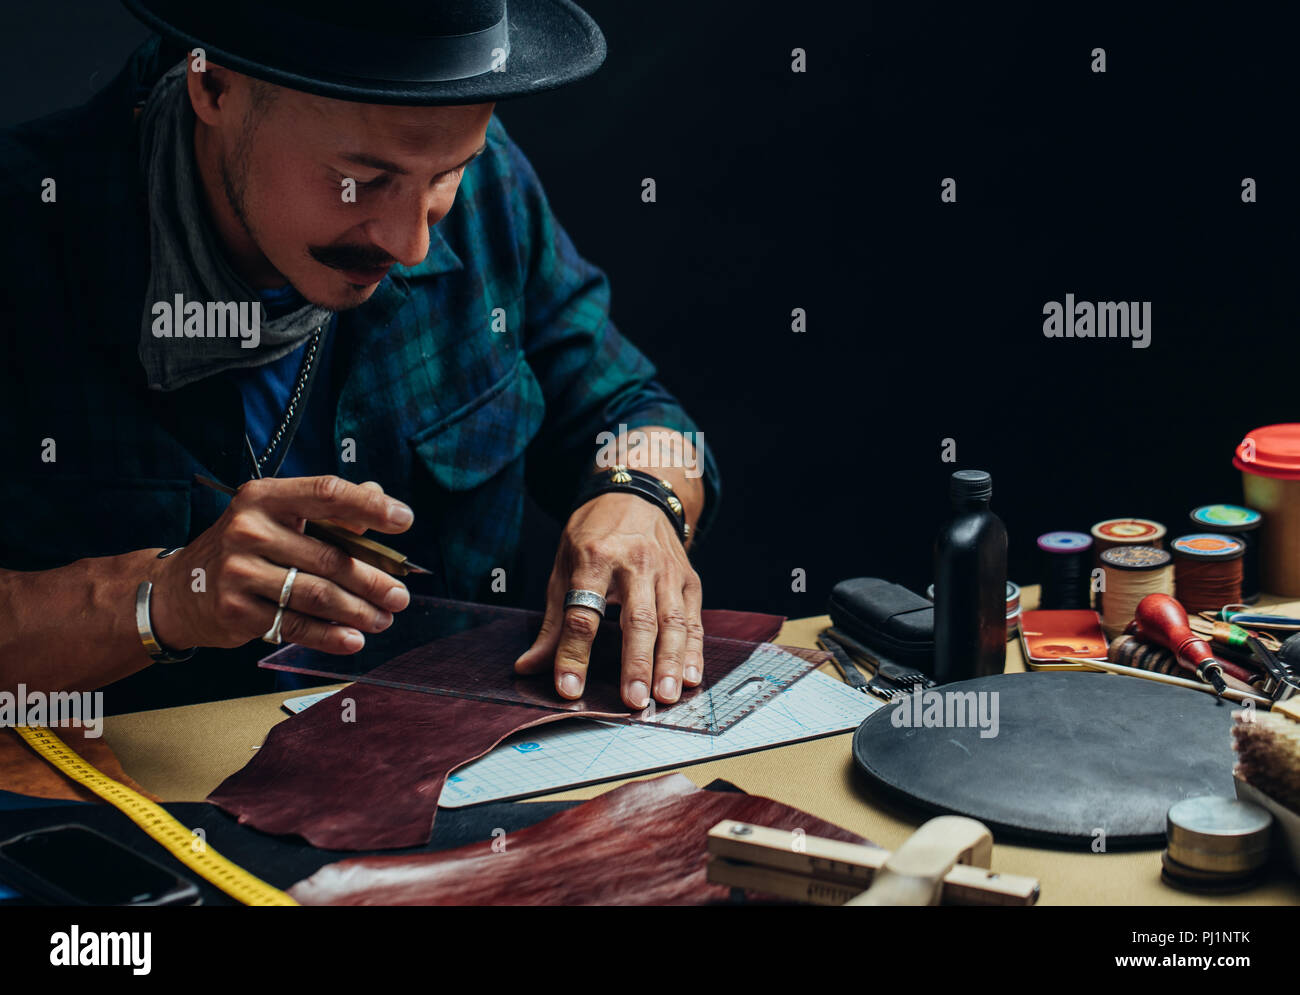 Working process of making shoes in workshop. - Stock Image